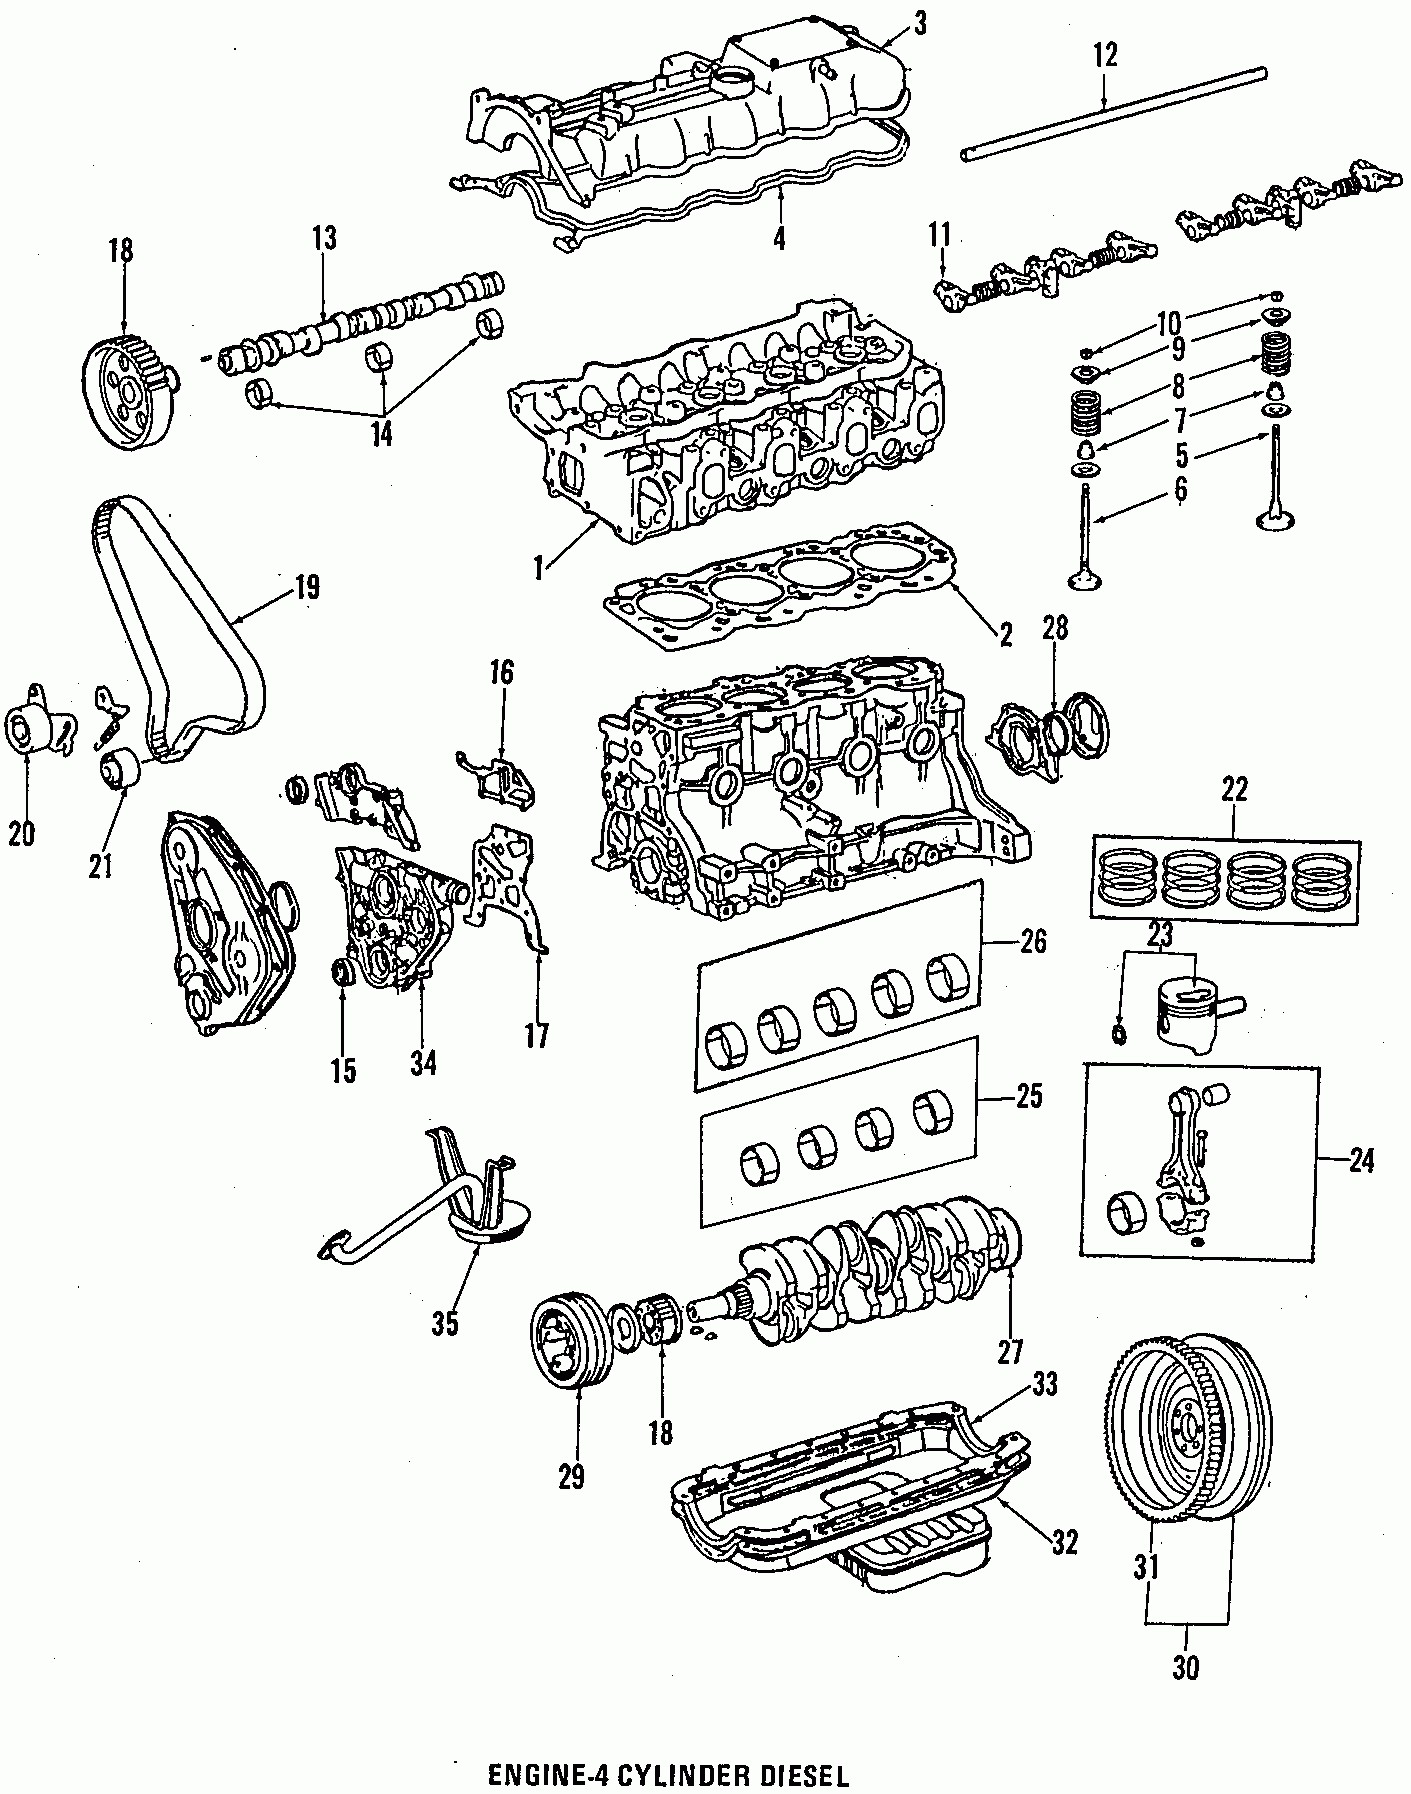 2004 Toyota Highlander Wiring Diagram Trusted Schematics Wire 2002 Library Exhaust System